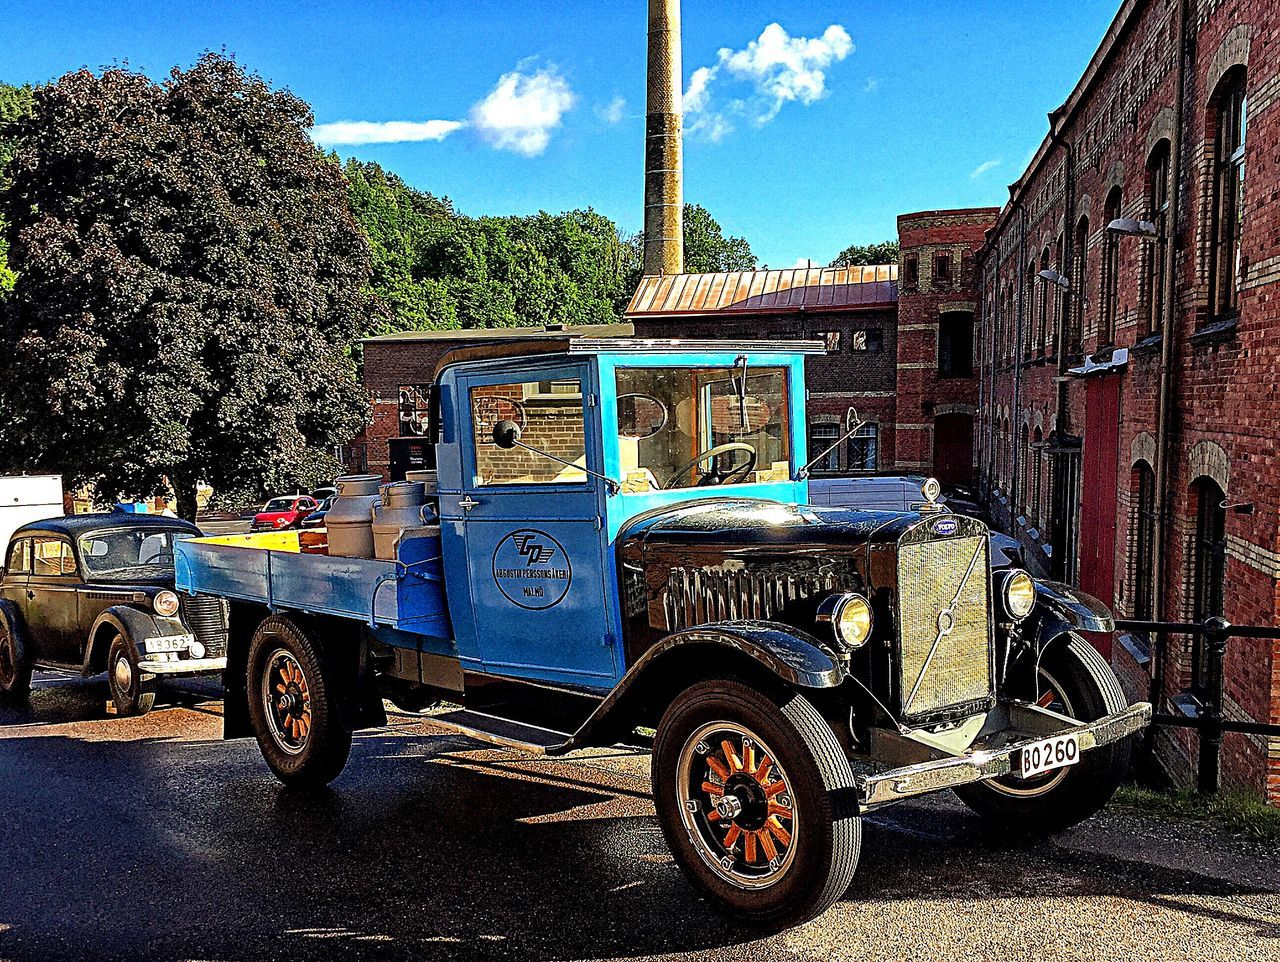 Oldtimes Outside Photography Vintage Vintage Cars Sweden Outside Old Old Car Showcase July Car Cars IPhoneography Blue Car Blue Check This Out Vintage Photo Taking Photos